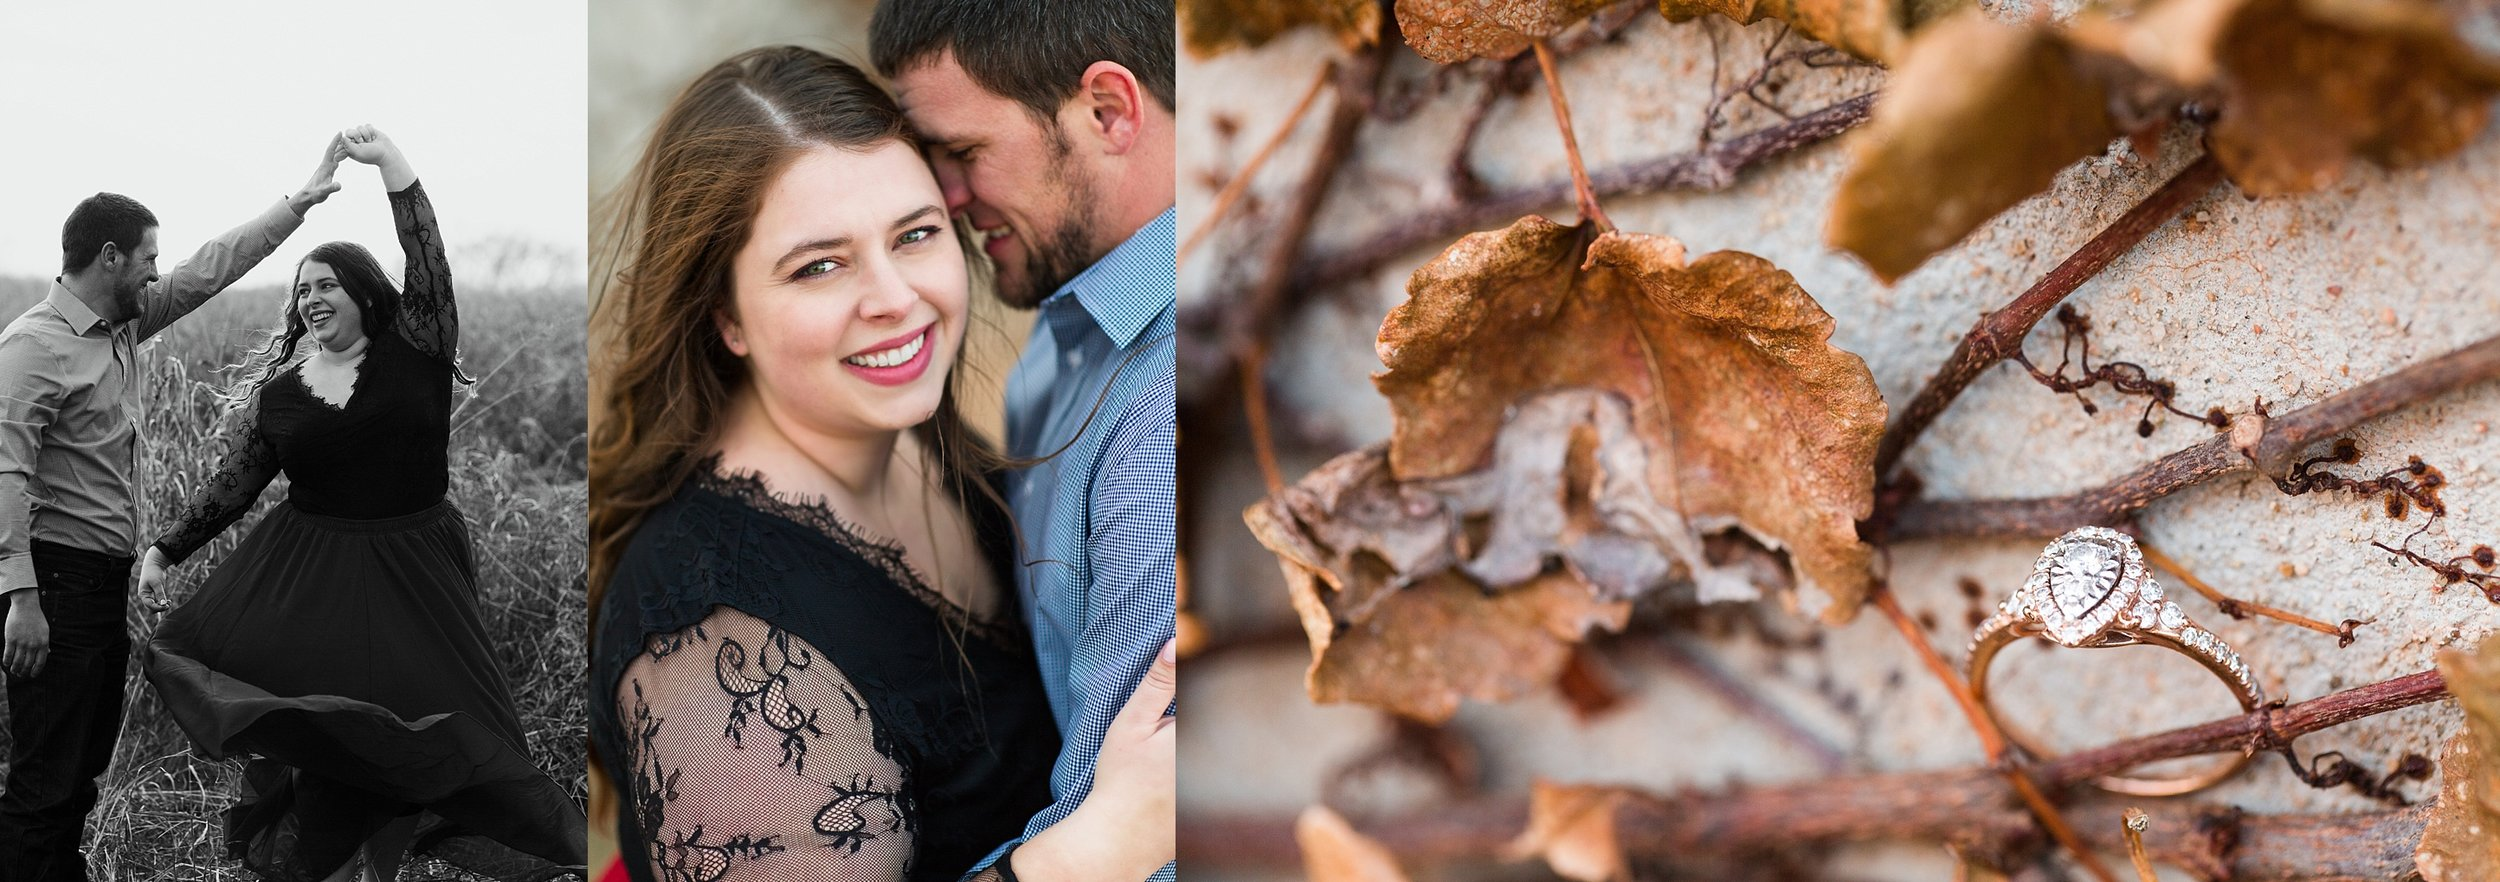 Engagement Photographer Edmond Oklahoma